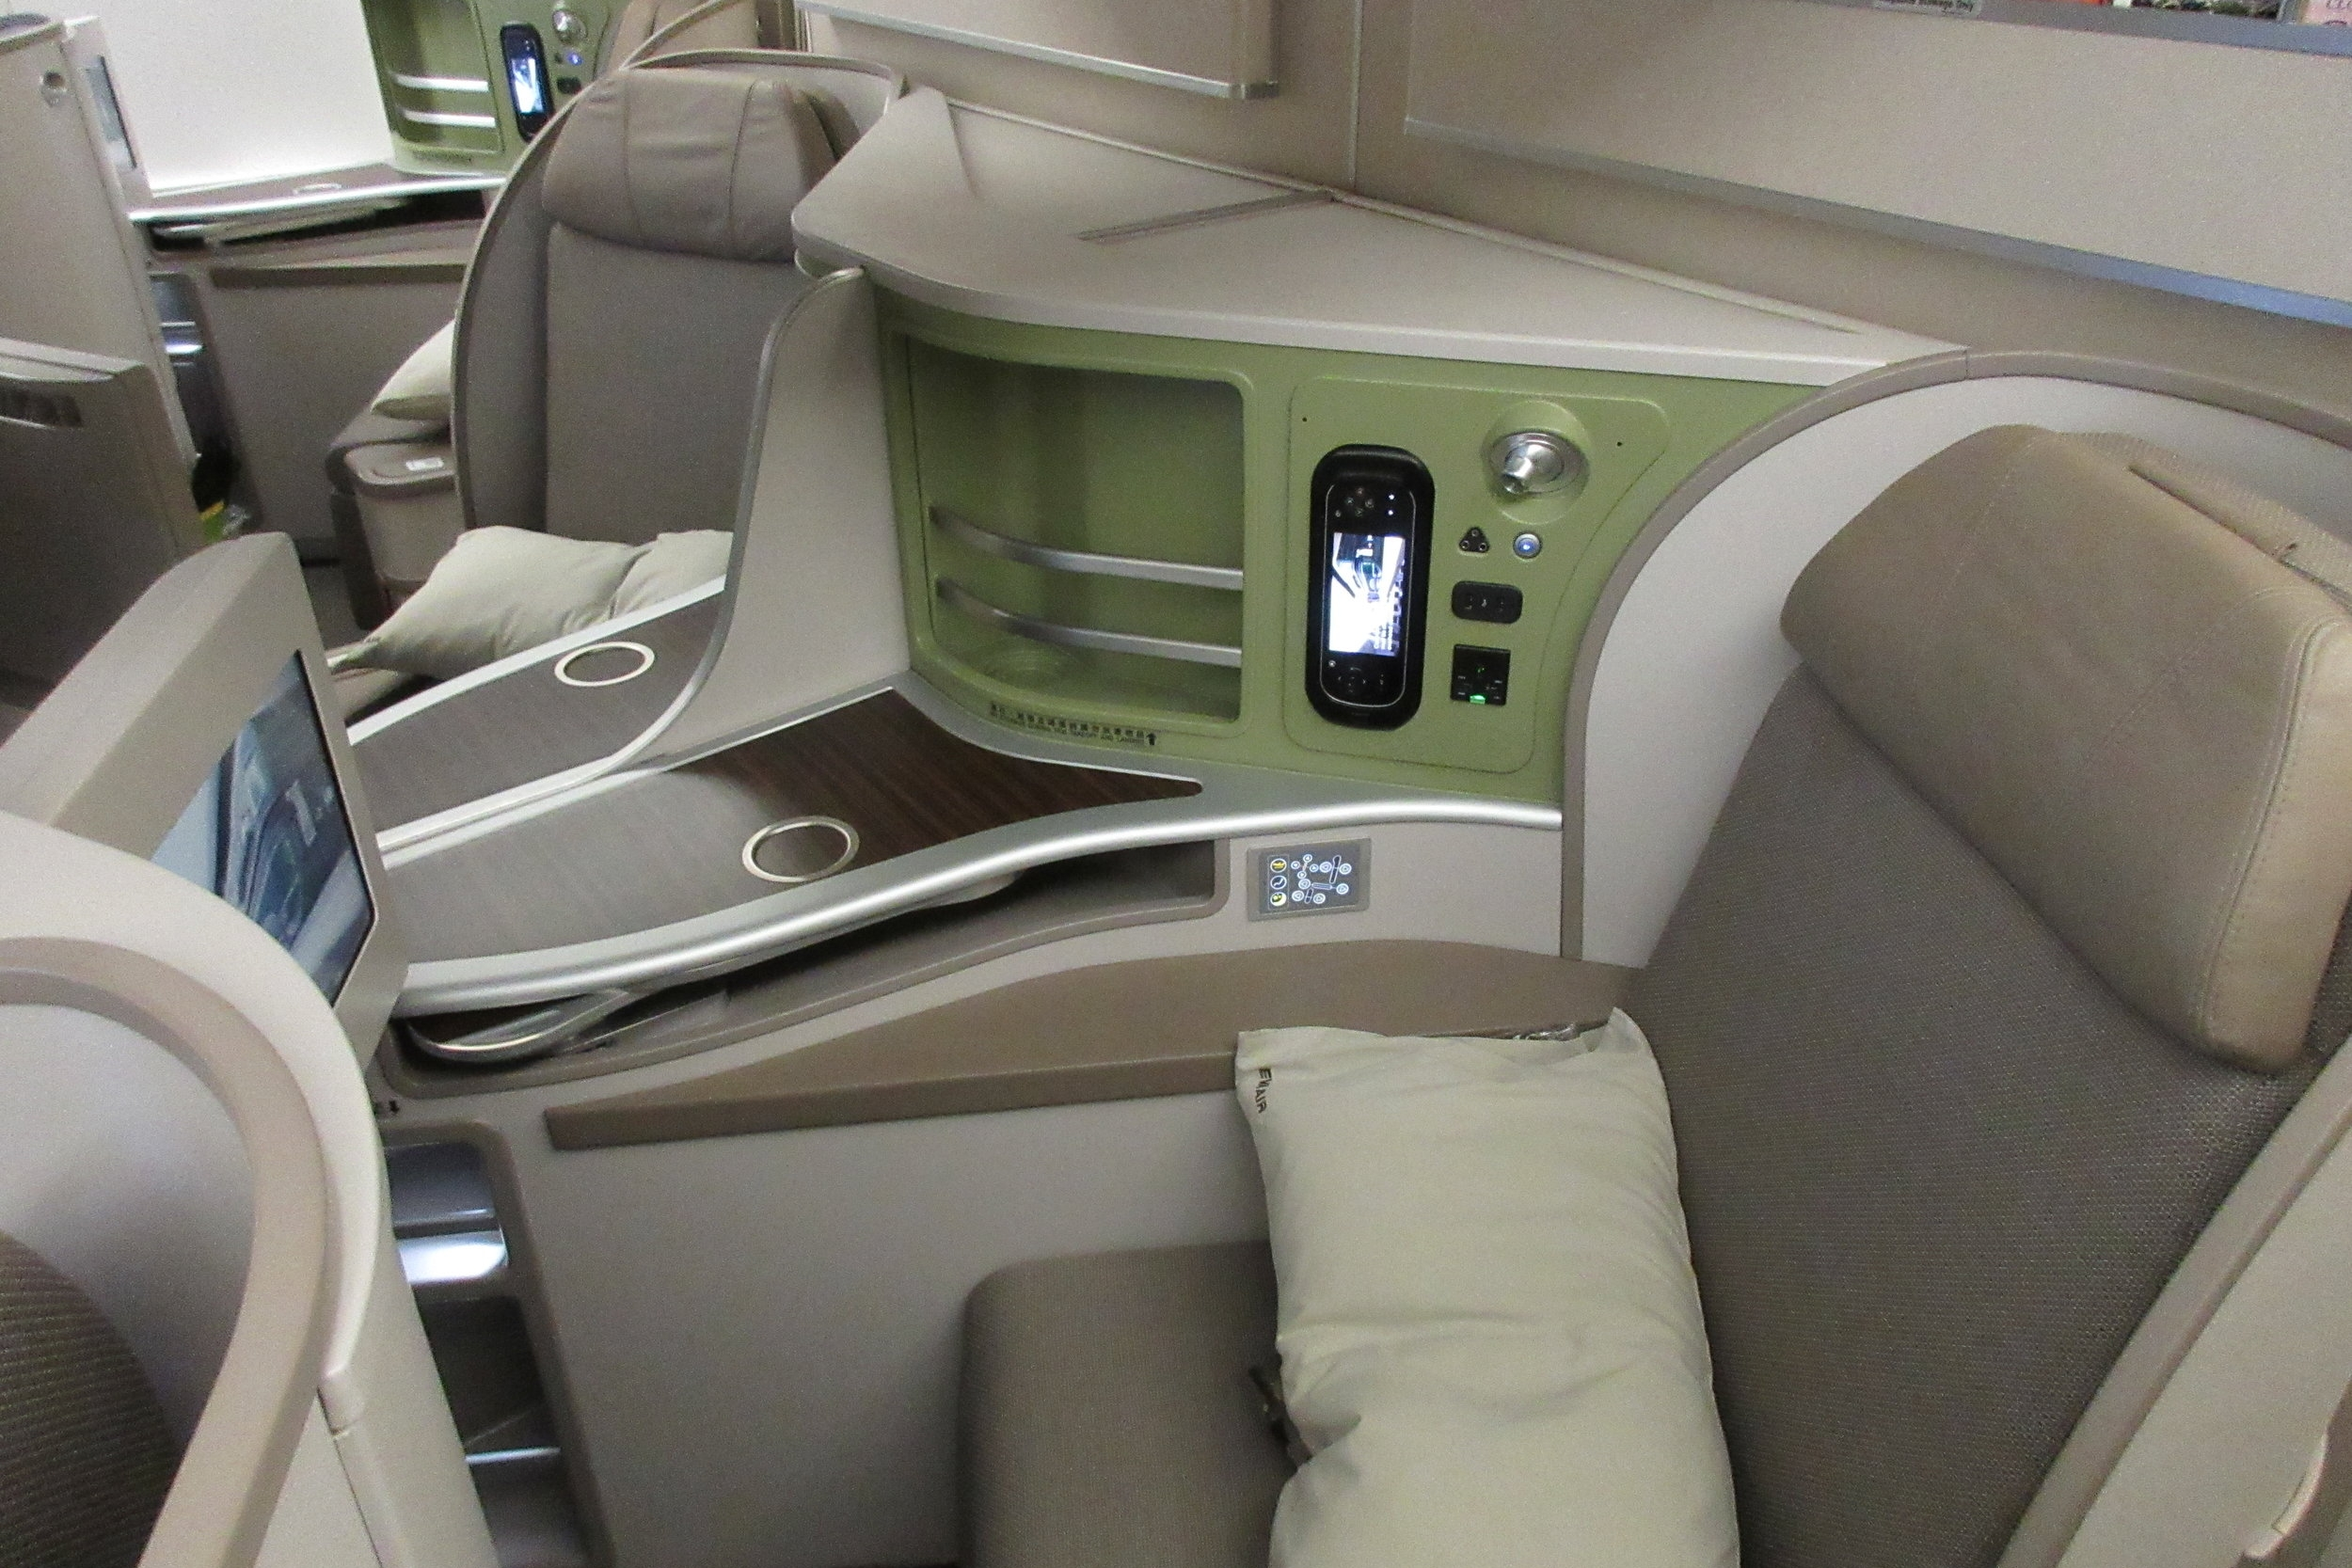 EVA Air 777 business class